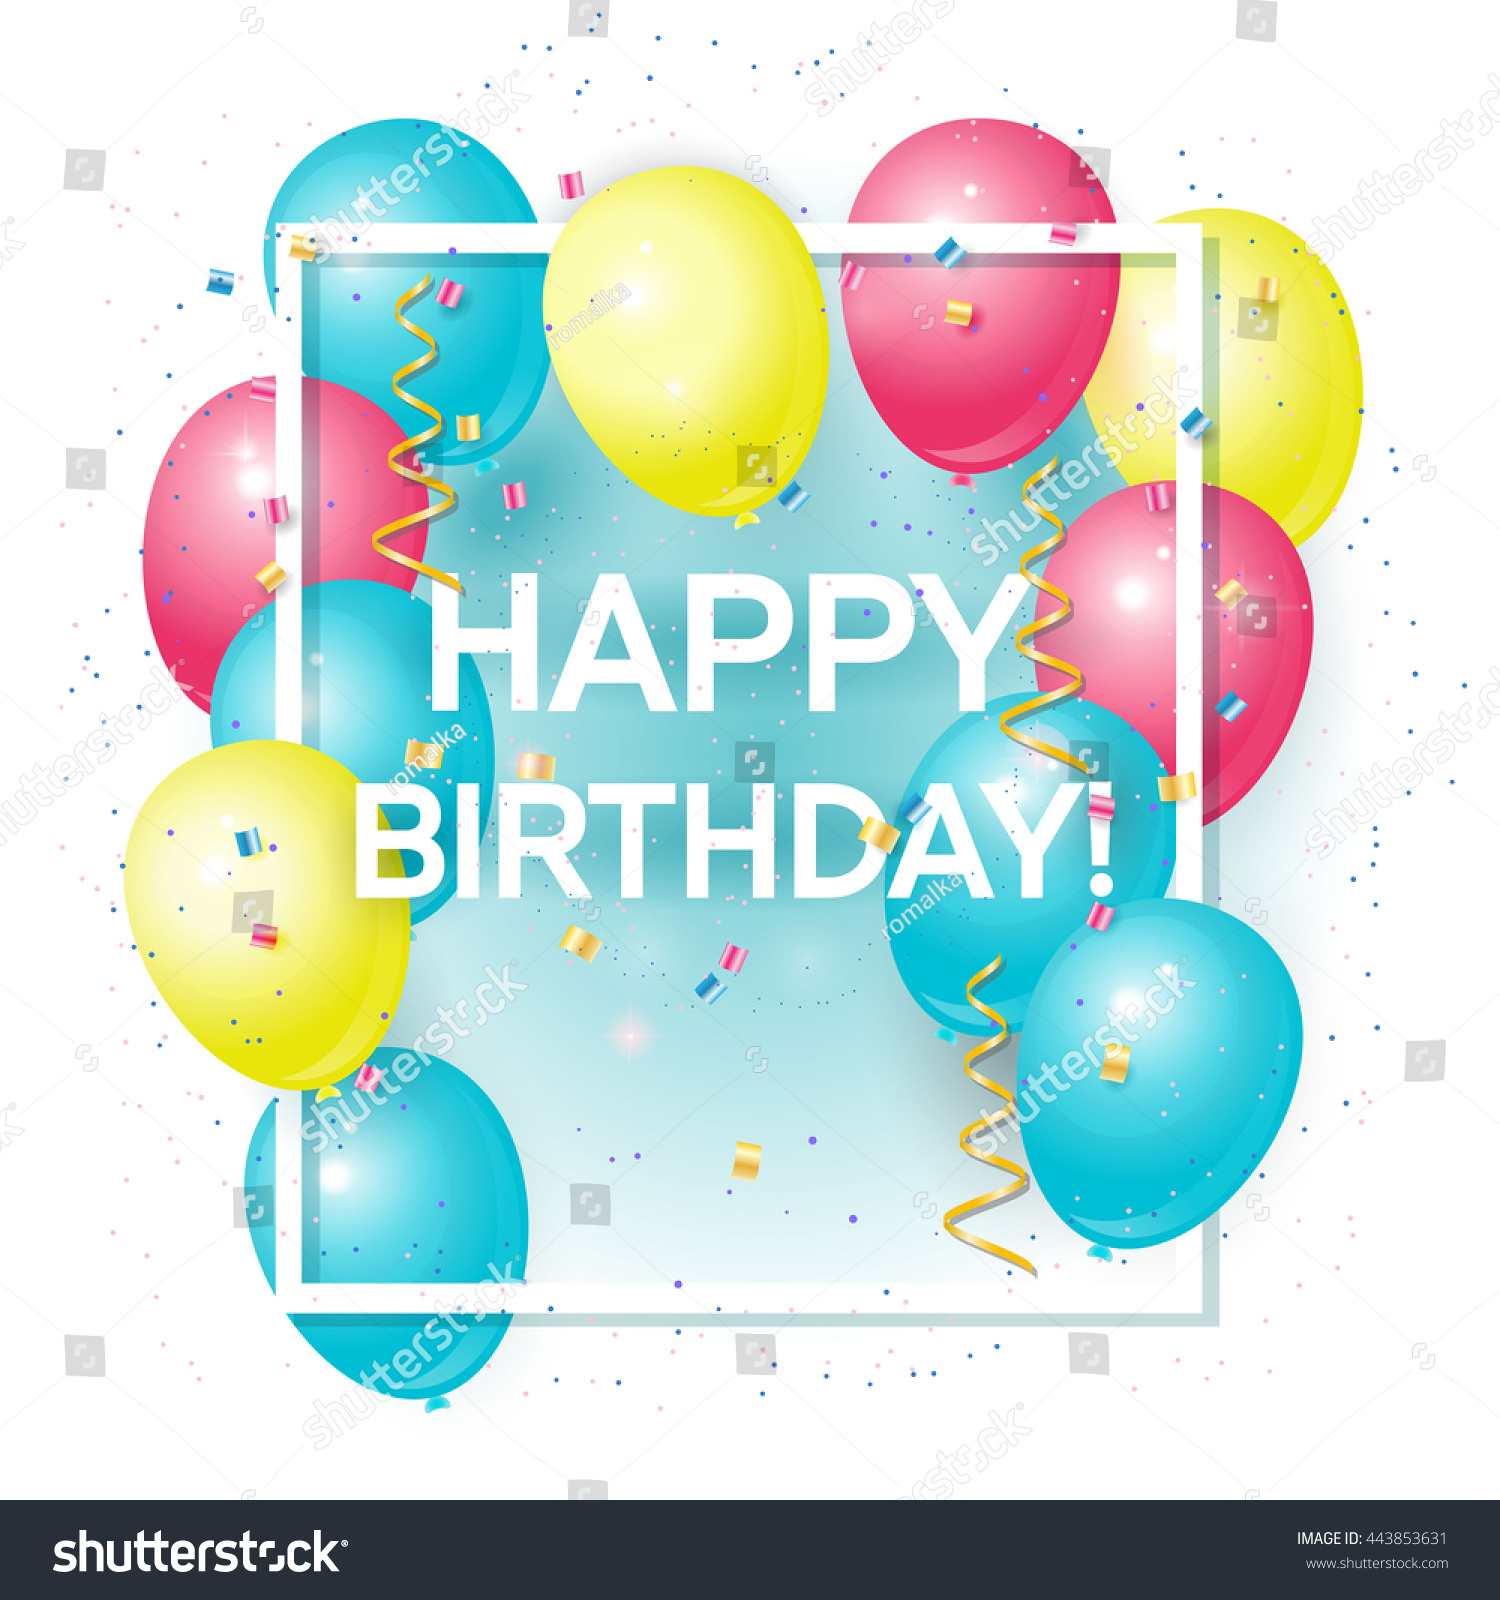 Happy Birthday Greeting Card With Volume Colored Balloons And Sample Text Can Be Used As